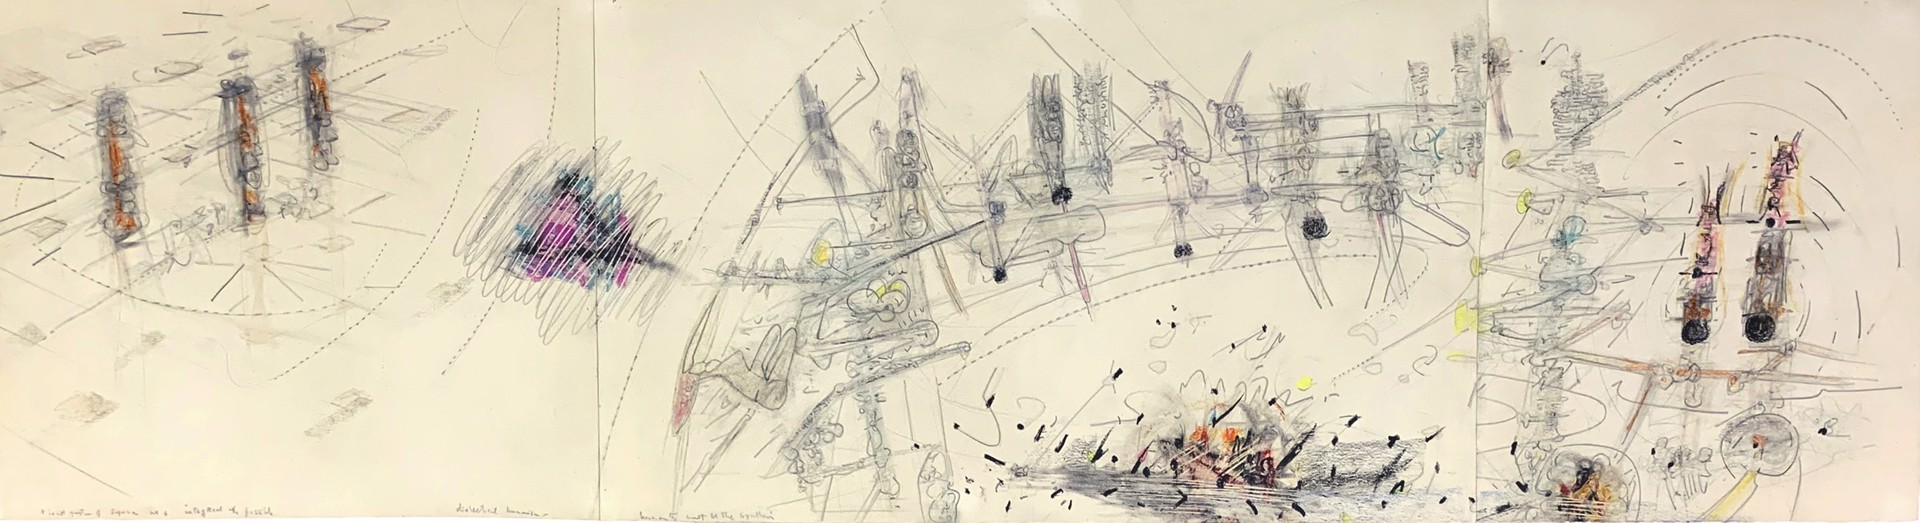 Roberto Matta drawing titled It's Not A Question of Superman made in 1950 that is made from graphite and color crayon on paper illustrating a sparse metaphysical and psychological innerscape dreamscape of floating elements